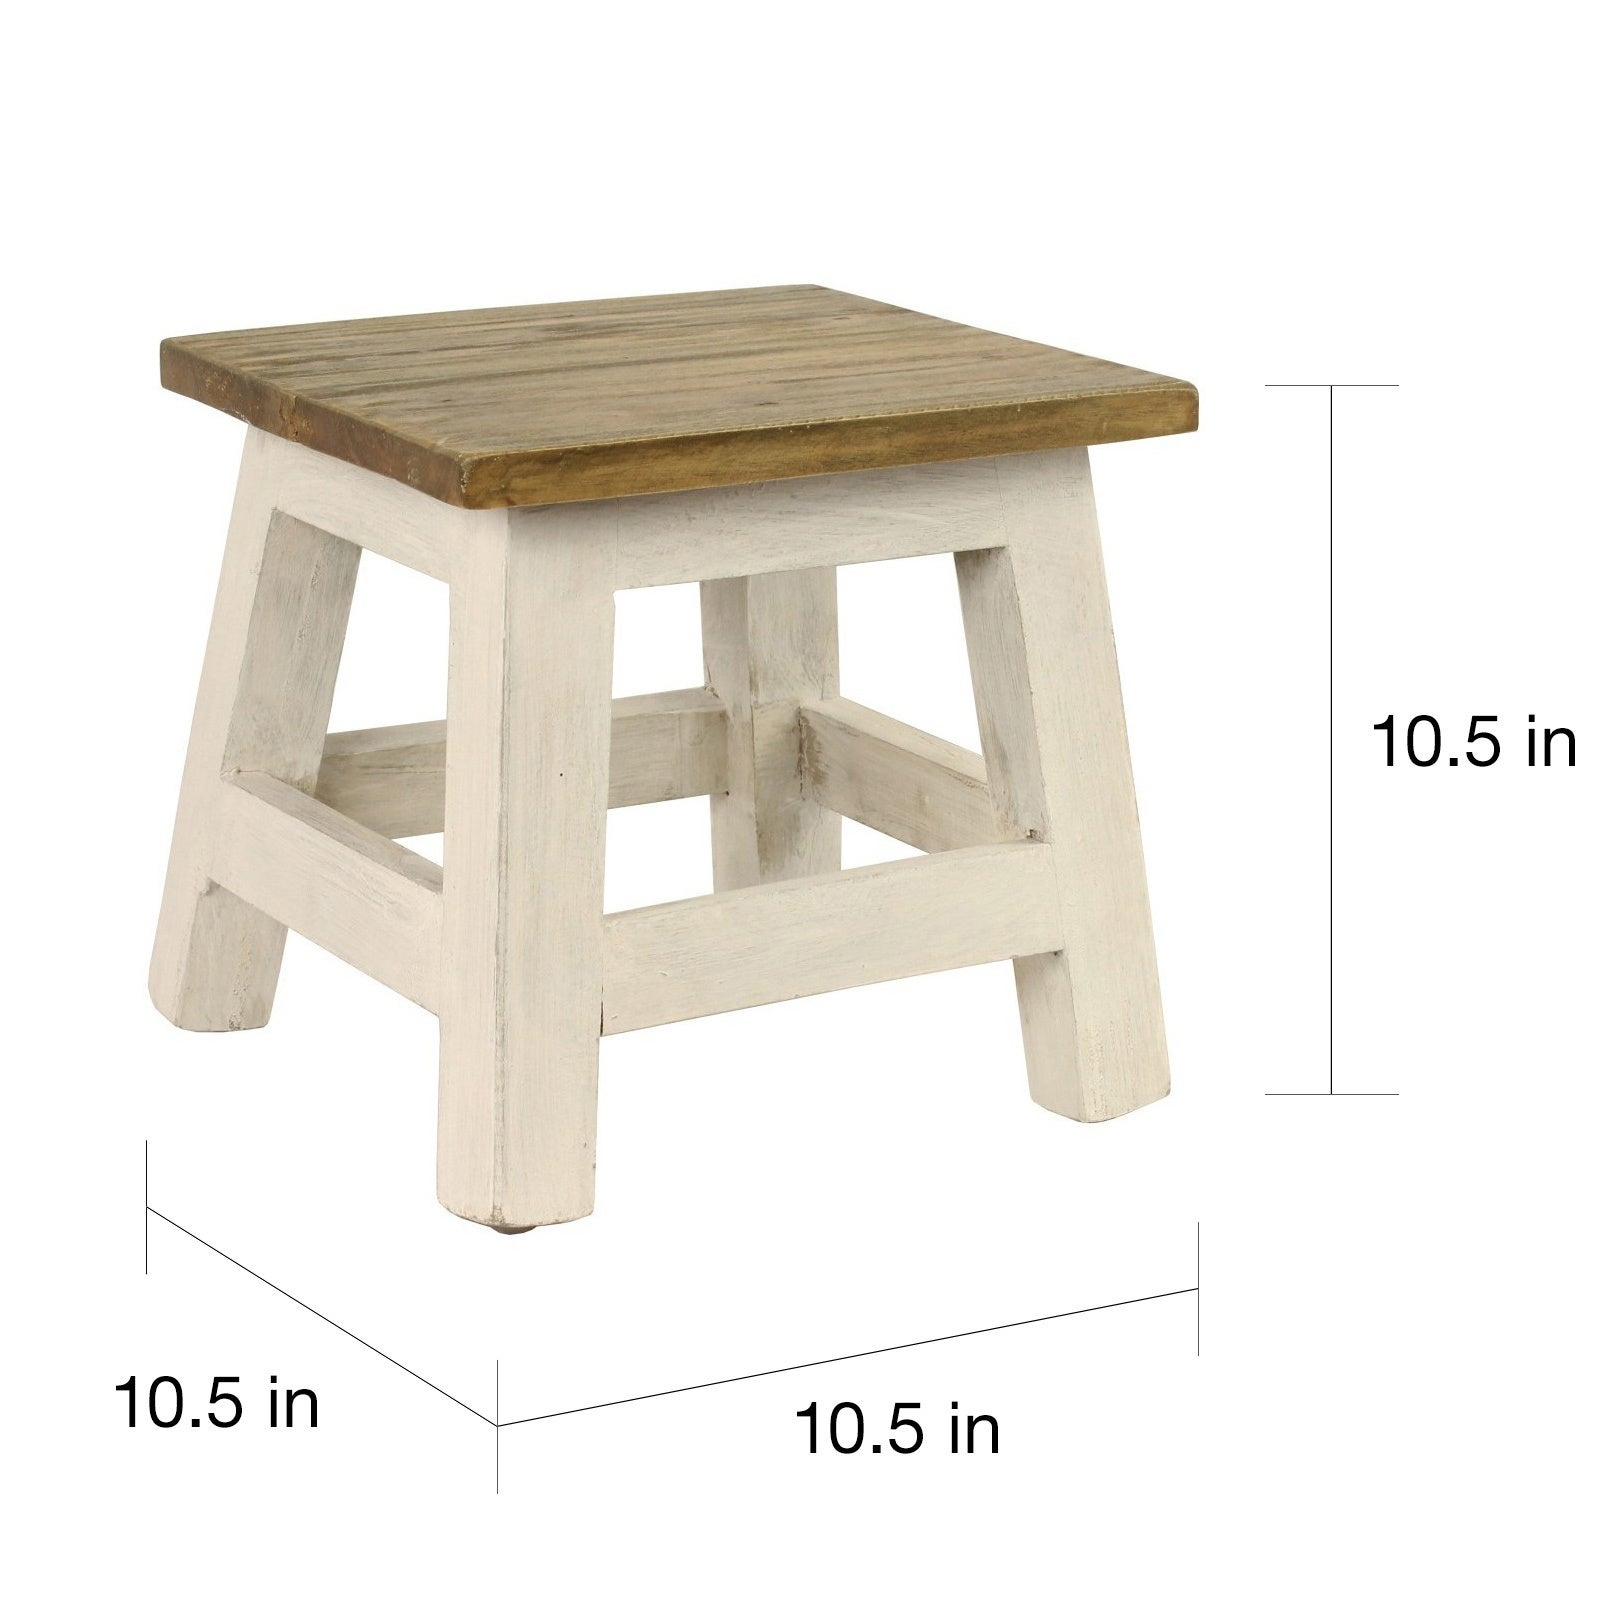 waste recycle tetrapak squarestool products recycled chipboard square furniture stool